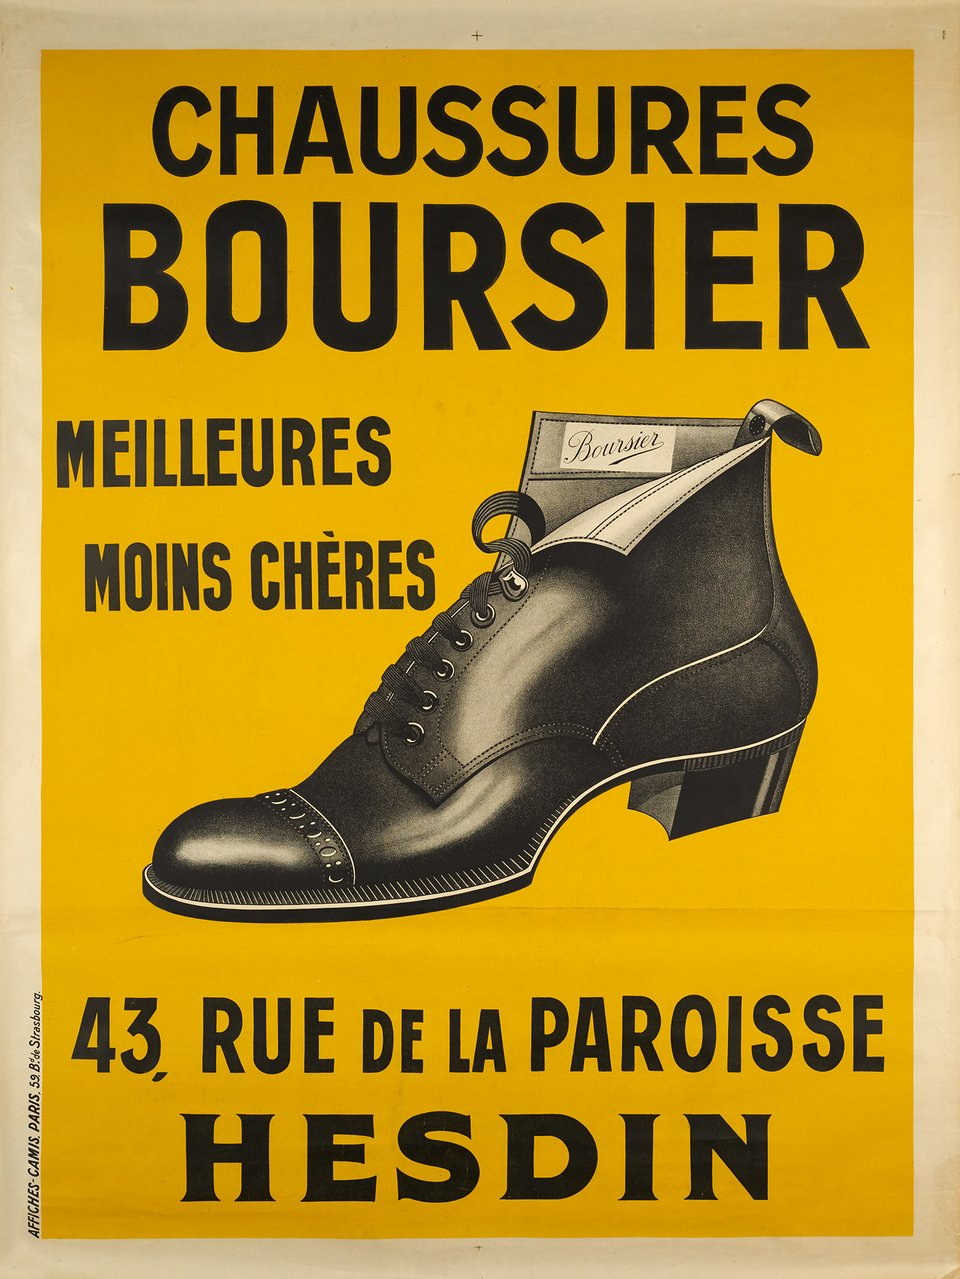 Chaussures Boursier – Affiche ancienne –  ANONYME – 1910